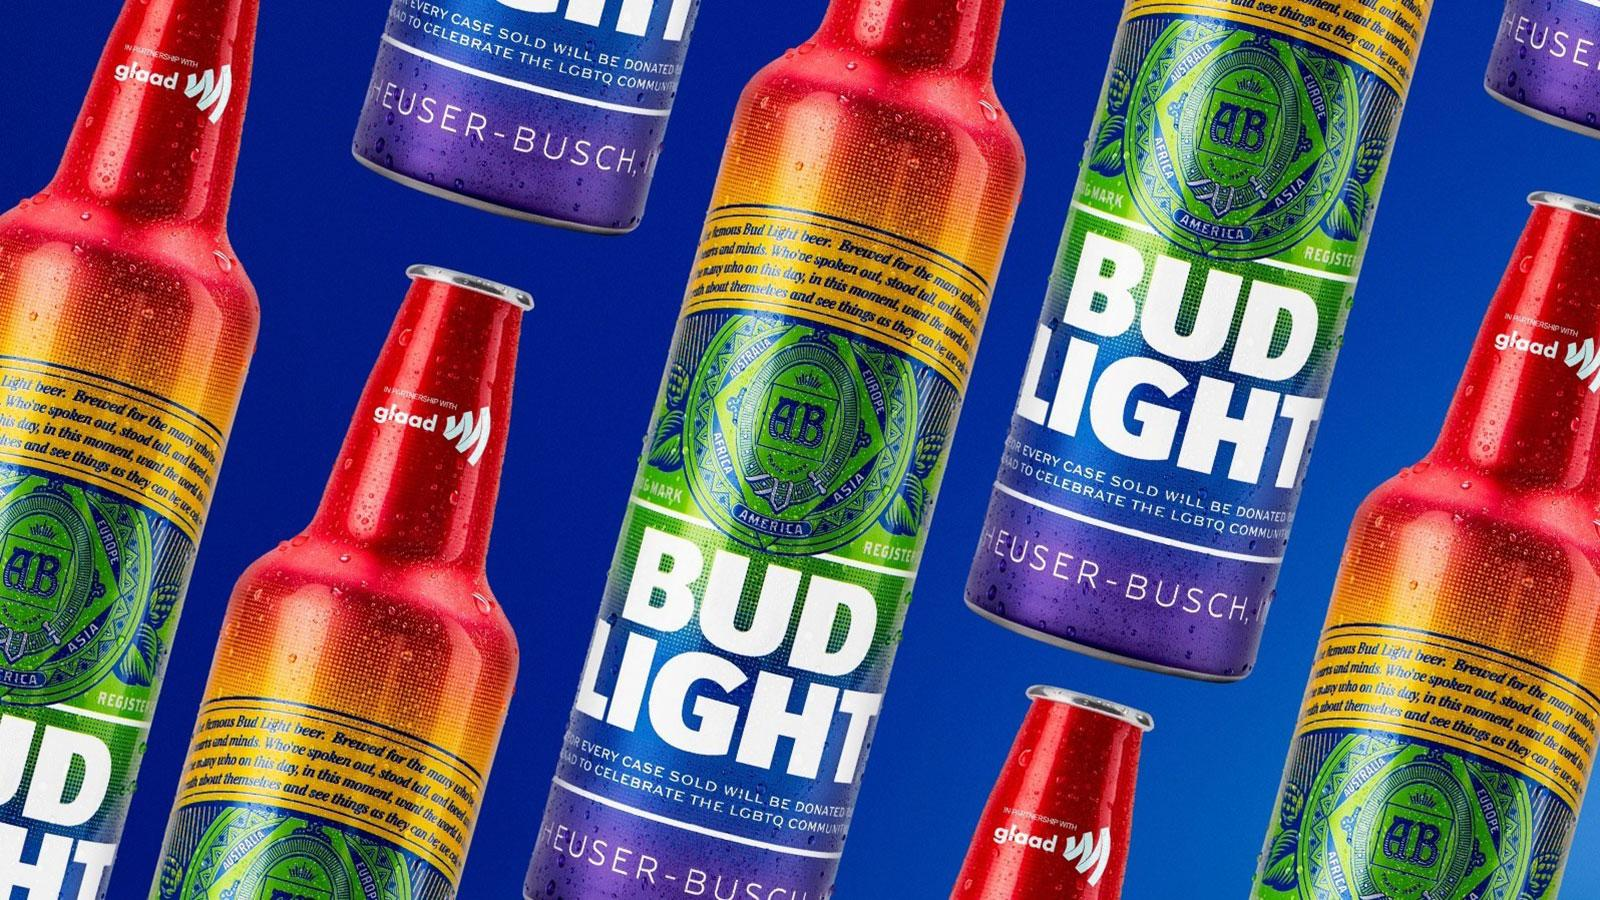 Bud Light Pride bottles